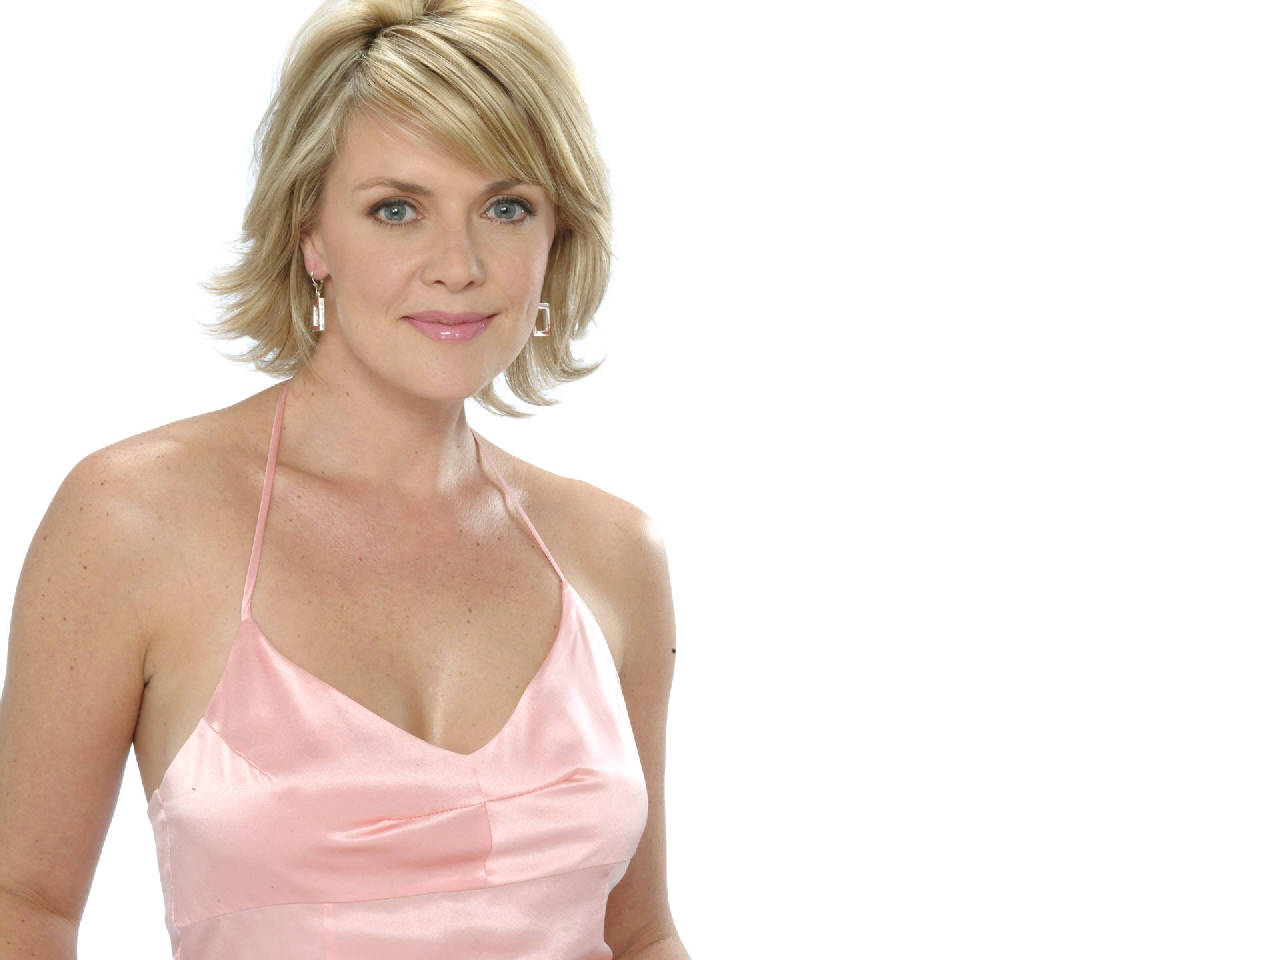 Cute Girl Wallpaper For Facebook Profile Hollywood All Stars Amanda Tapping Pictures Bio And